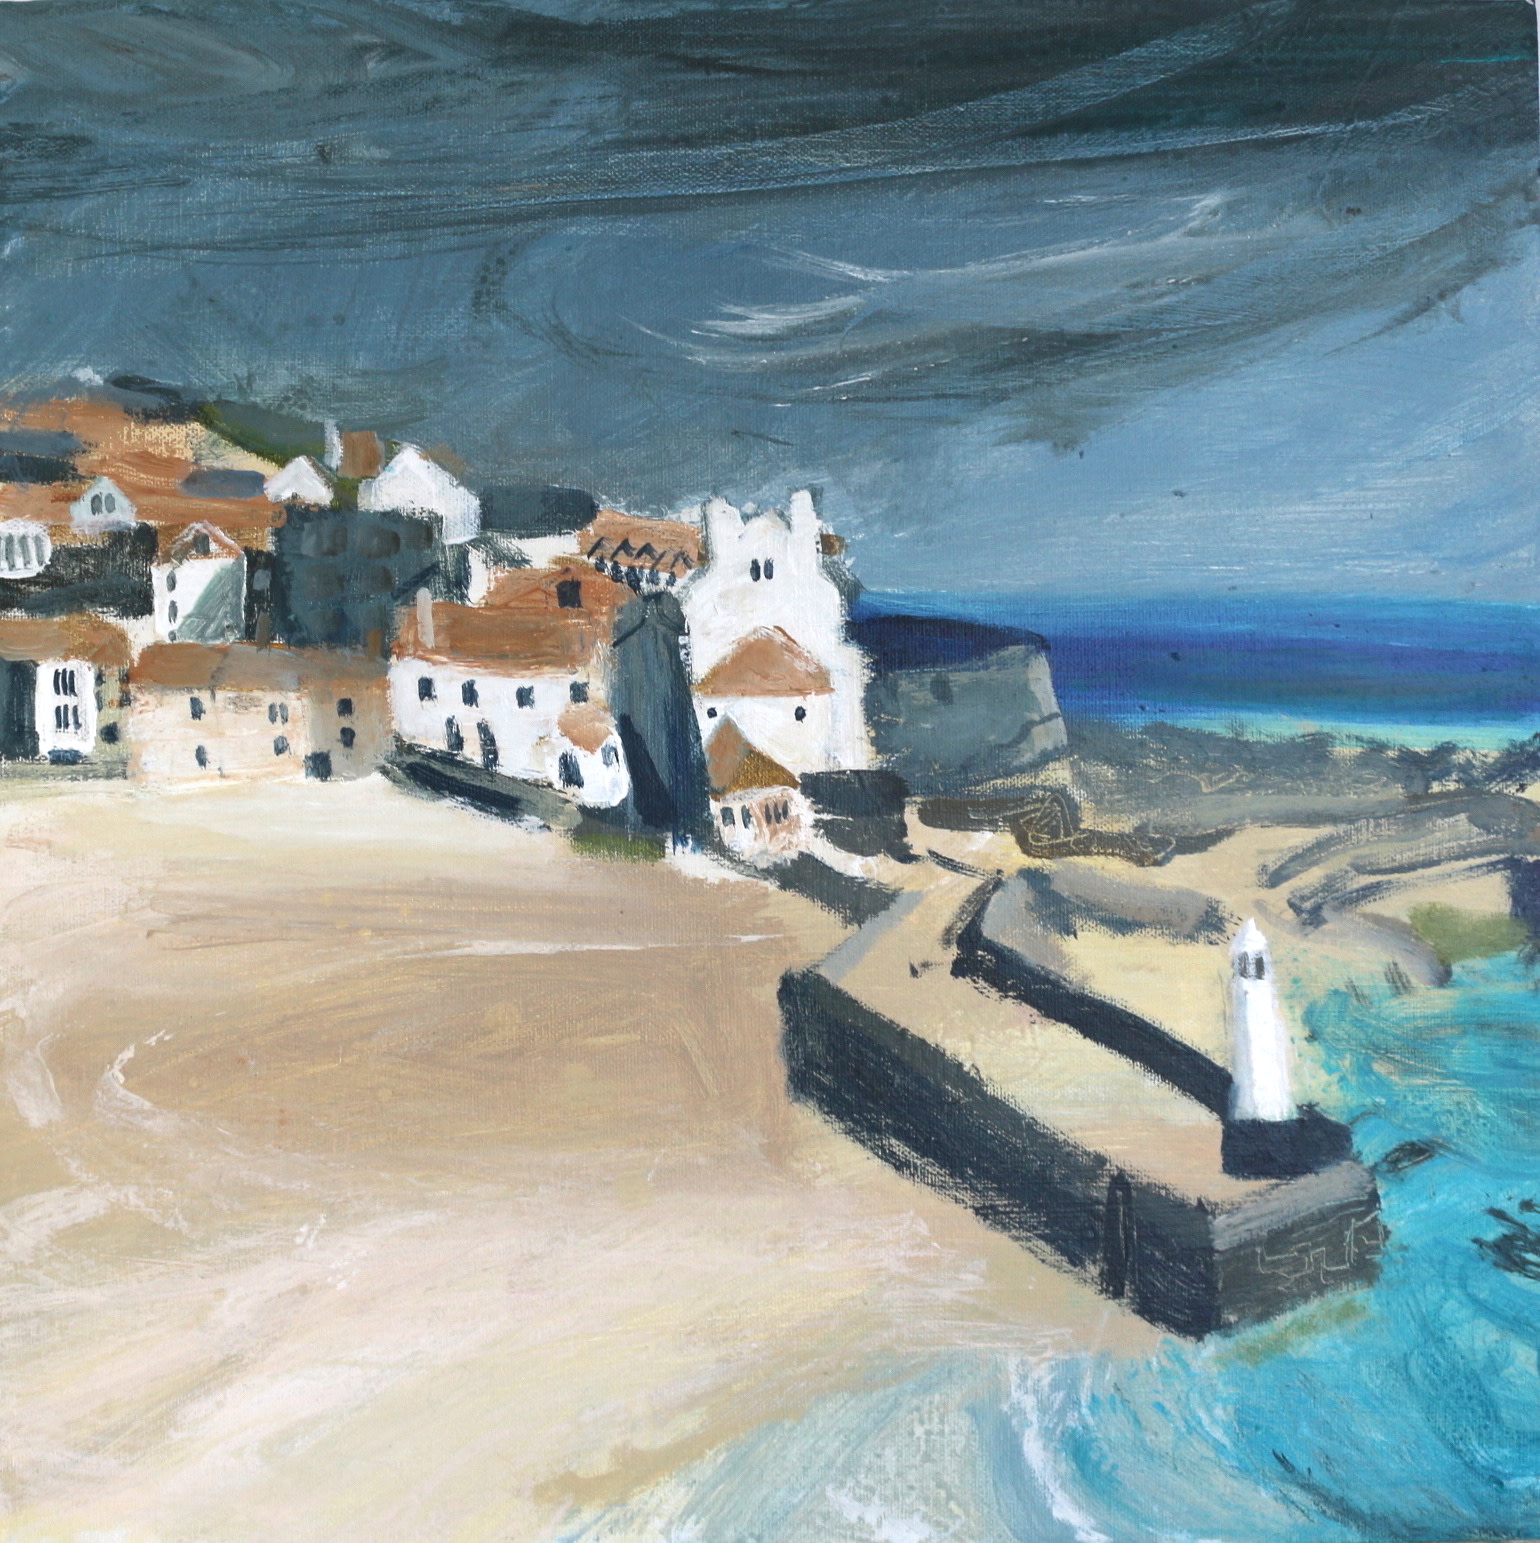 <span class=&#34;link fancybox-details-link&#34;><a href=&#34;/artists/177-jane-askey/works/5513-jane-askey-smeatons-pier-turquoise-sea-2018/&#34;>View Detail Page</a></span><div class=&#34;artist&#34;><strong>Jane Askey</strong></div> <div class=&#34;title&#34;><em>Smeatons Pier Turquoise Sea</em>, 2018</div> <div class=&#34;signed_and_dated&#34;>signed</div> <div class=&#34;medium&#34;>mixed media on canvas</div> <div class=&#34;dimensions&#34;>44 x 44 cm<br /> 17 3/8 x 17 3/8 inches</div><div class=&#34;copyright_line&#34;>OwnArt: £ 66 x 10 Months, 0% APR</div>